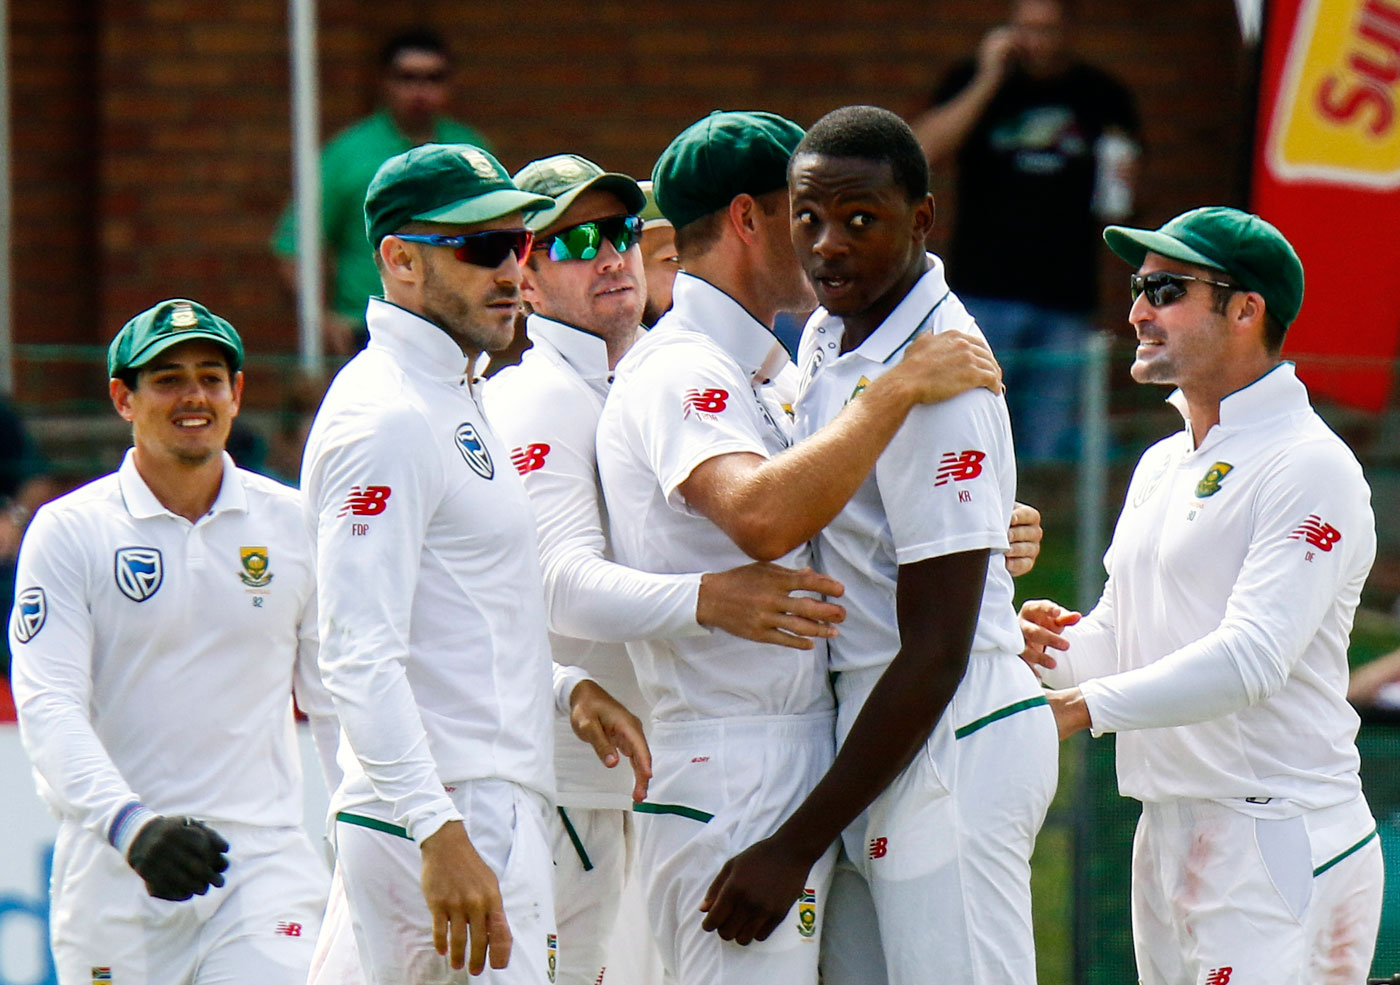 CSA to seek legal advice on Rabada ICC ruling